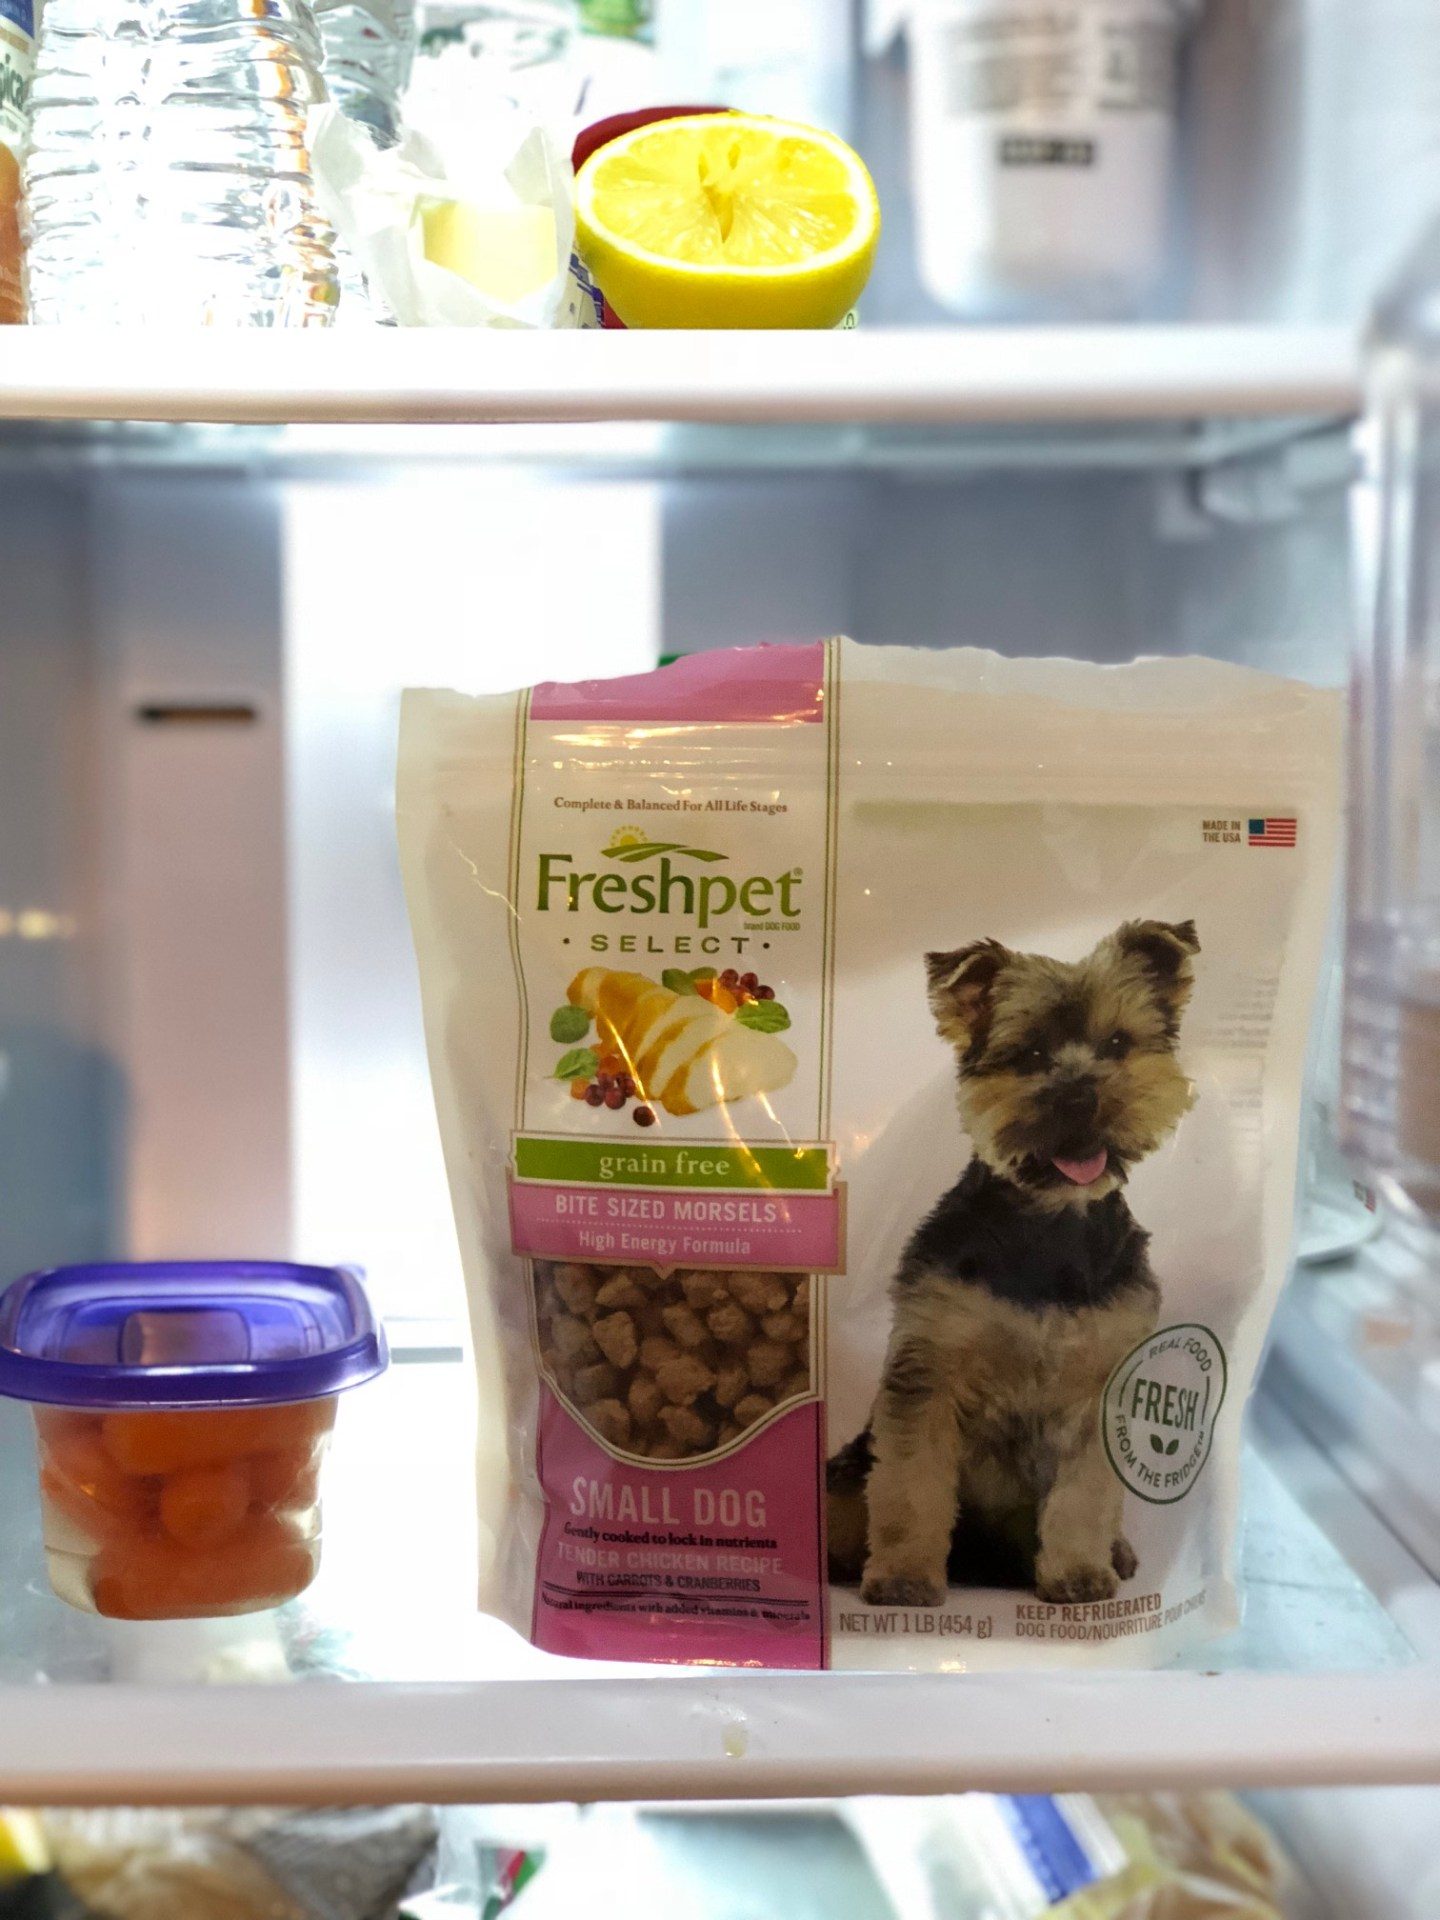 Lifestyle Blog Chocolate and Lace shares her review of Freshpet Dog Food.